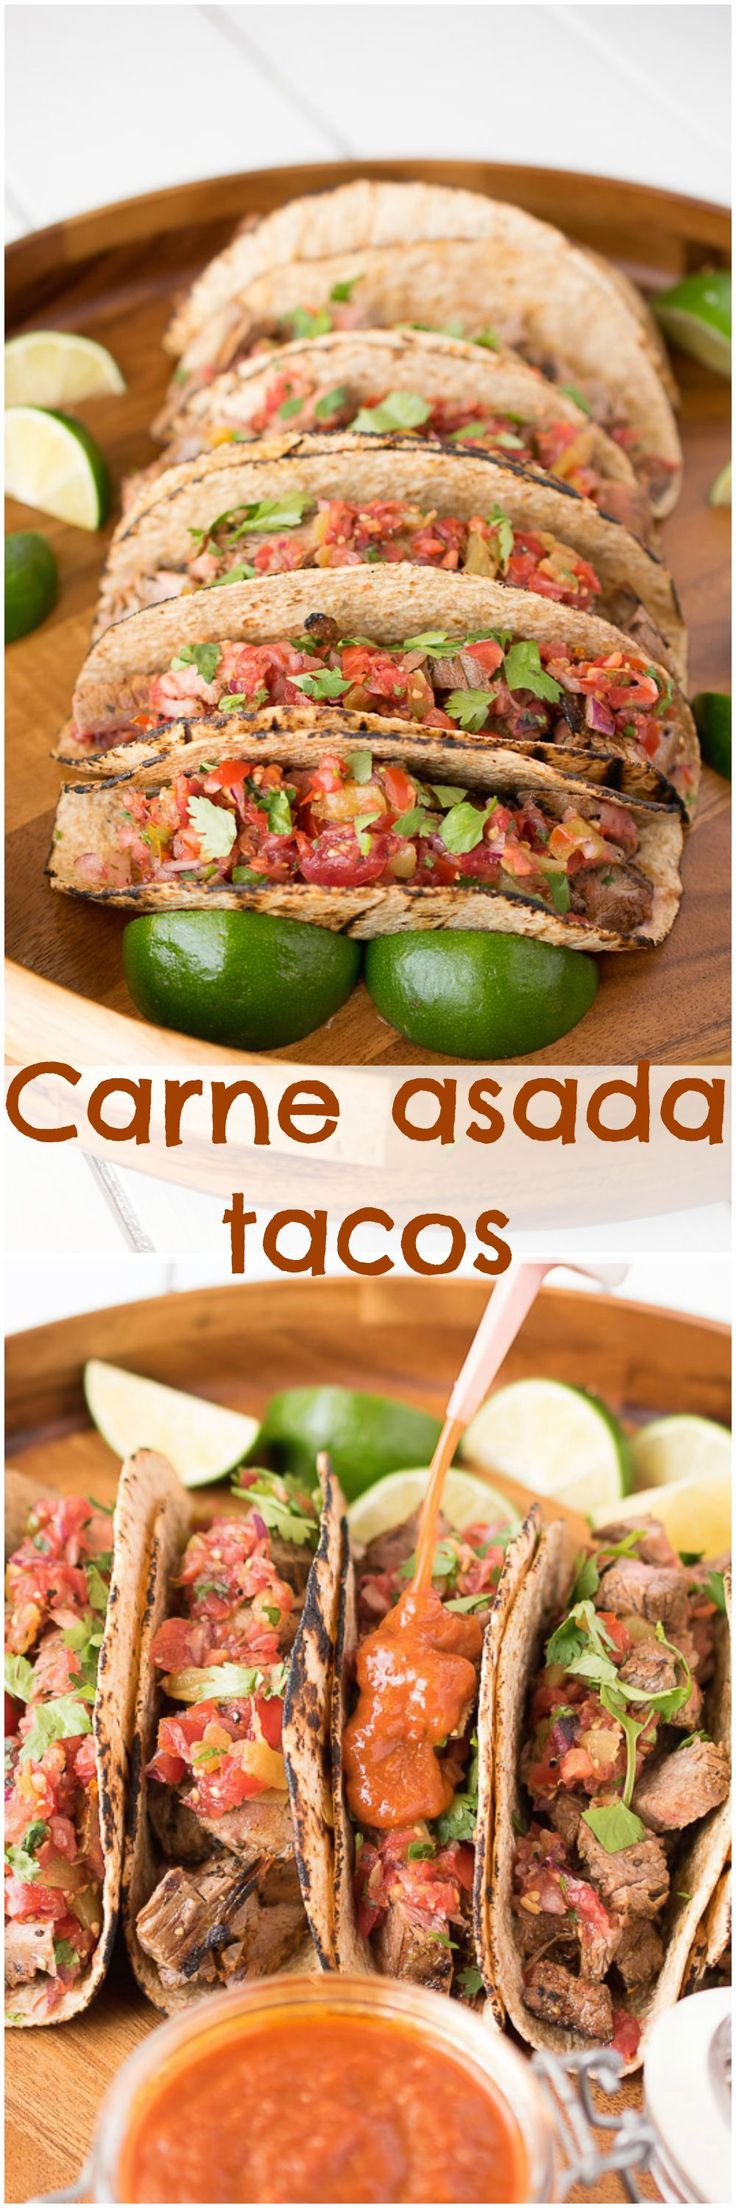 Carne asada tacos. Flank steak marinated in citrus and spices, grilled to perfection and served in grilled tortillas with your favorite salsa.